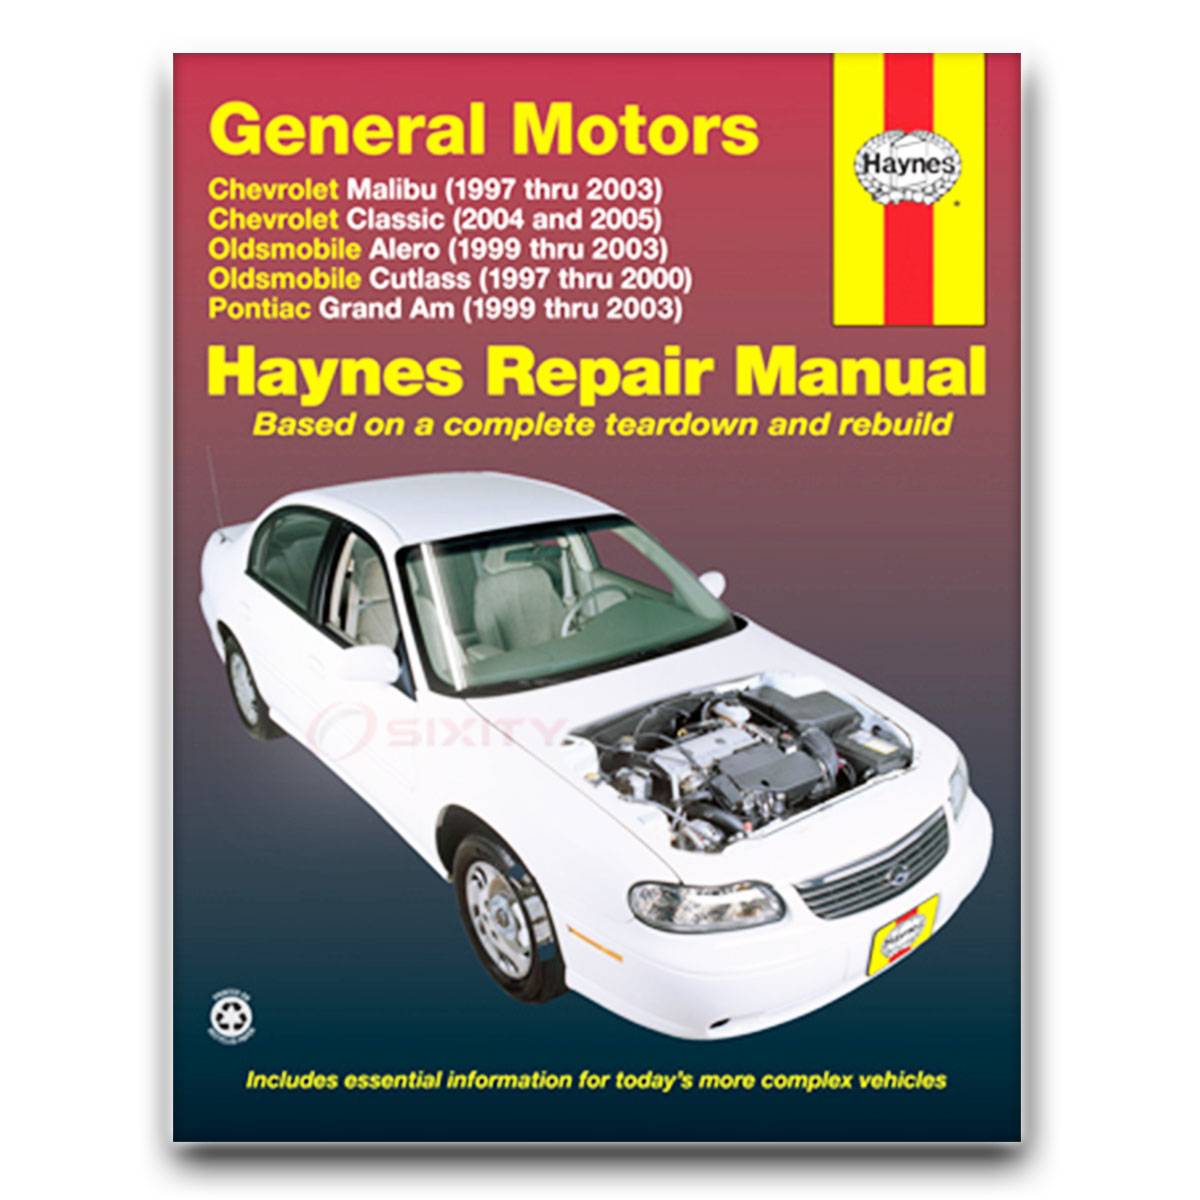 Haynes Repair Manual for Oldsmobile Alero GLS GX Shop Service Garage Book fe